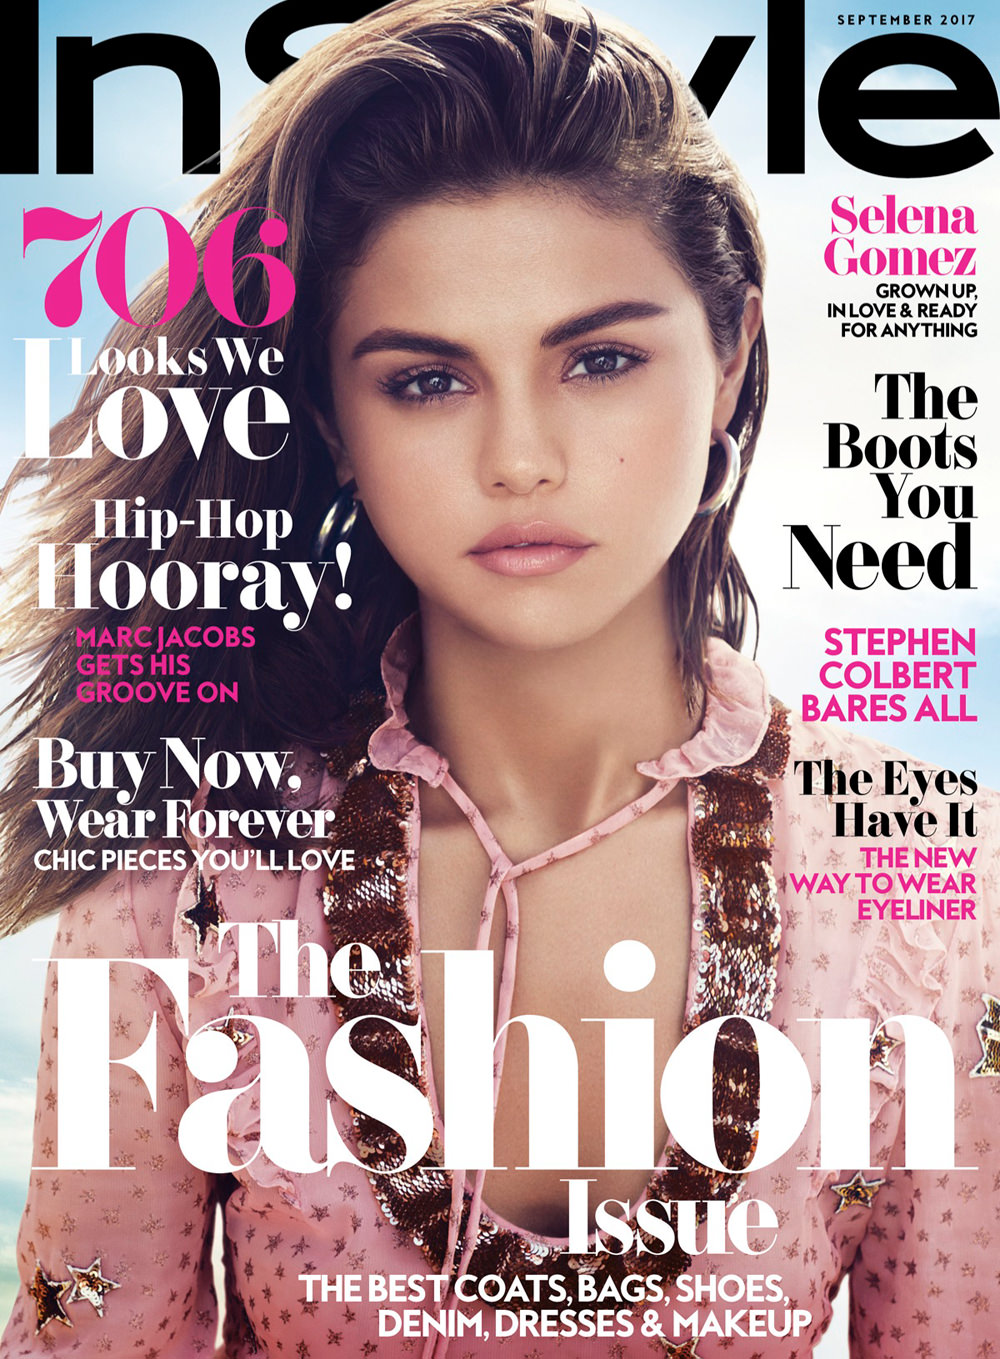 Instyle Magazine Us: Selena Gomez Covers The September 2017 Issue Of InStyle